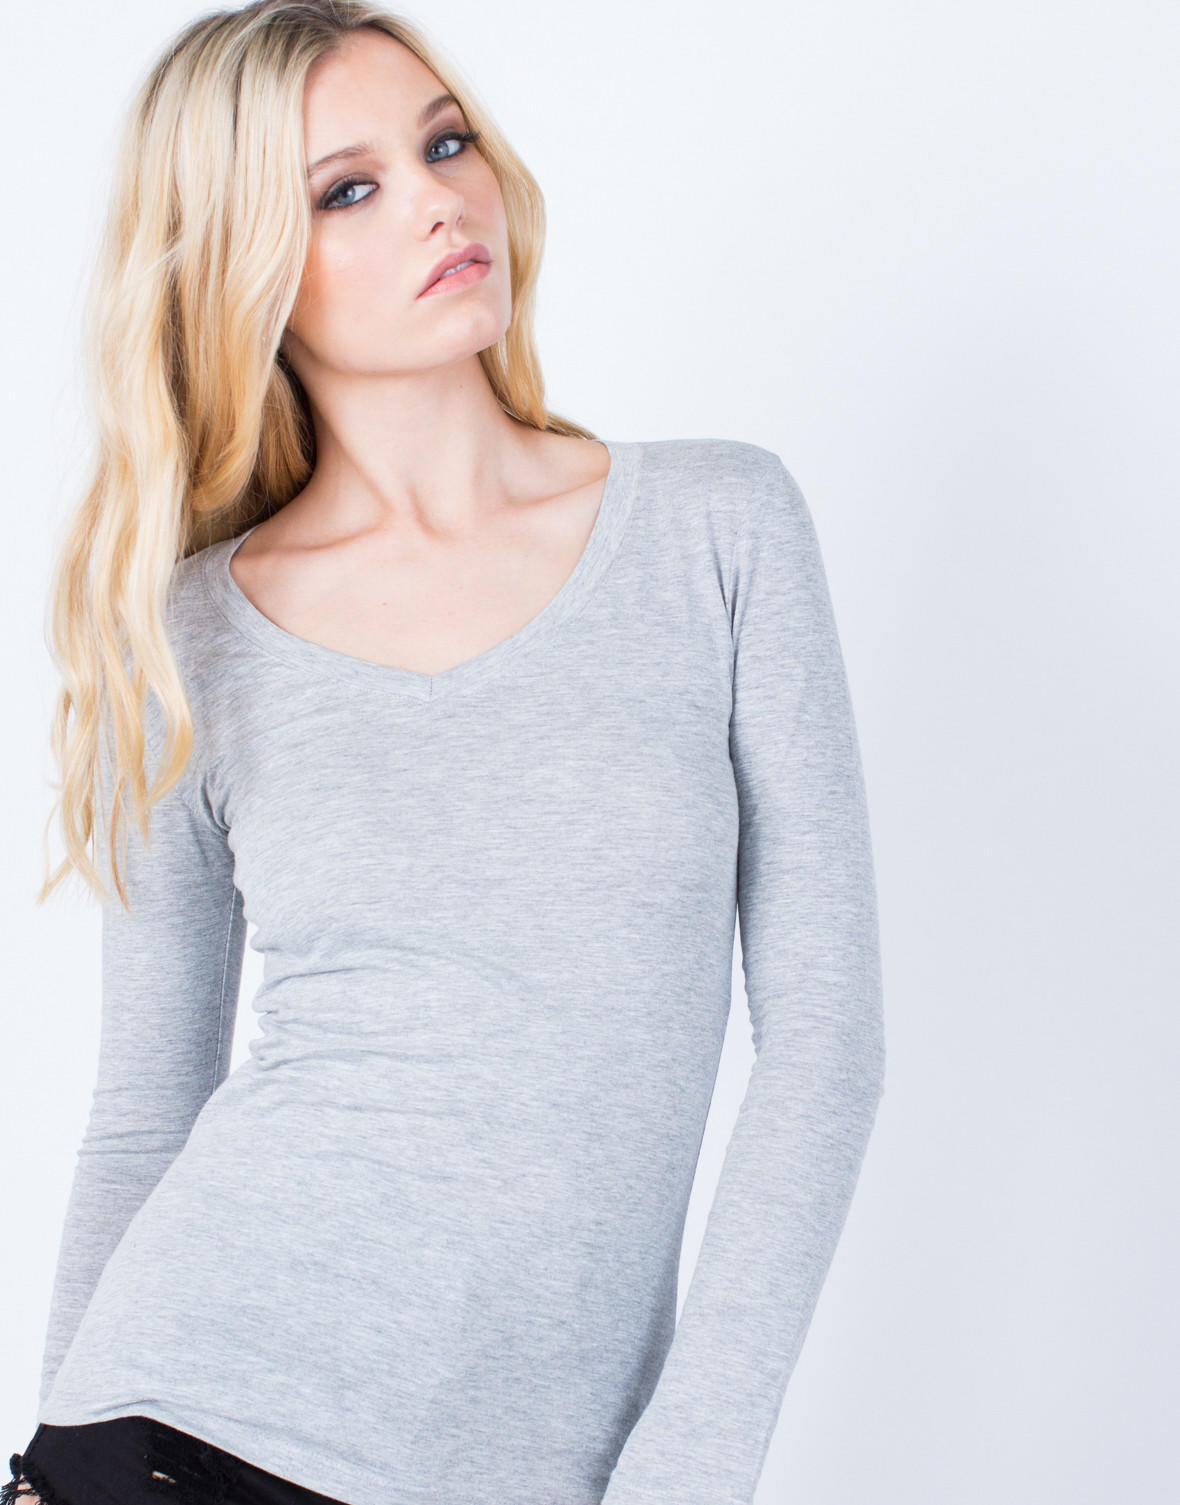 bd09fc20a Basic V-Neck Top. Save Sold. Saved to. sweaters , Shirts ...